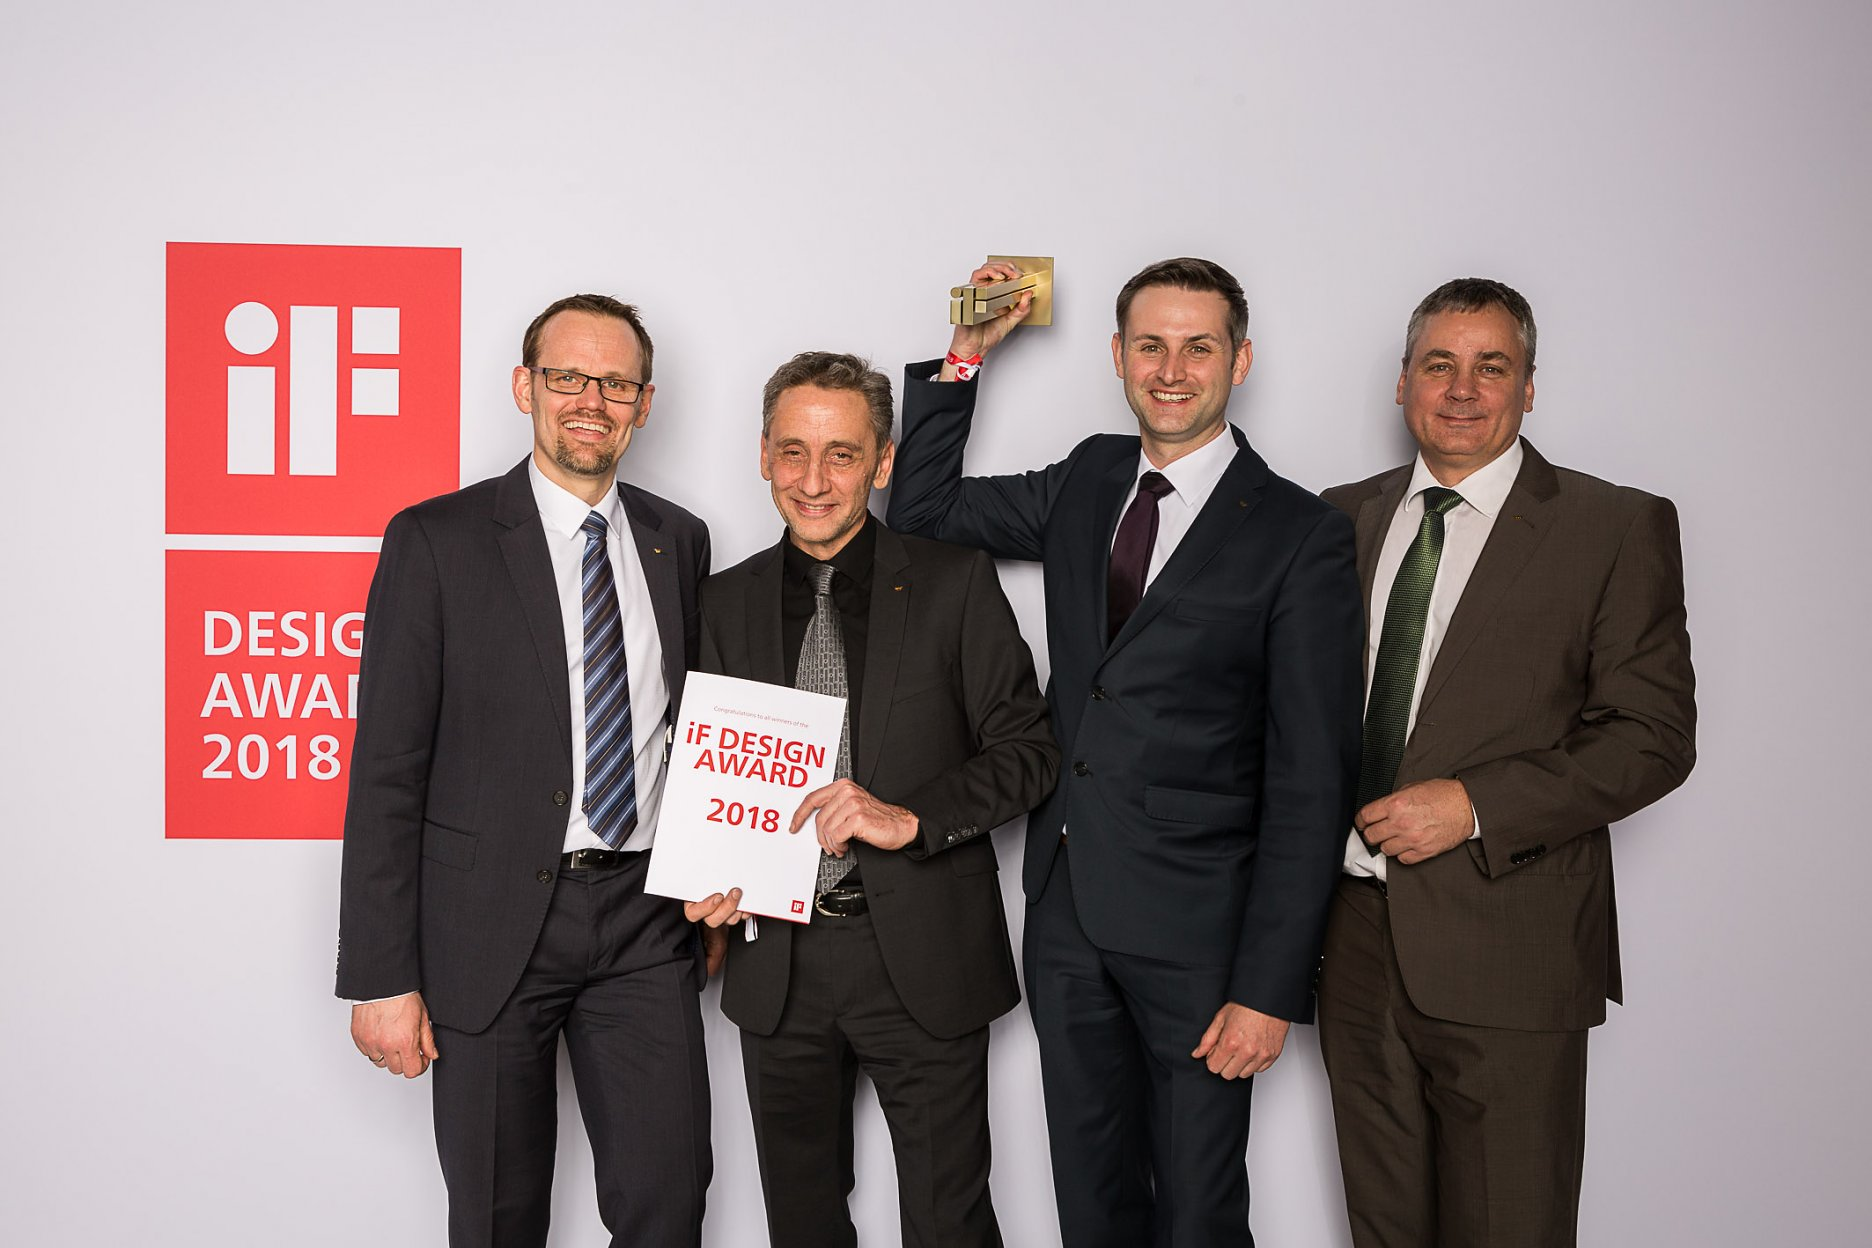 Víťazi zlatej ceny iF Design Award 2018 (zľava): Henning Köln, Head of Product Management Ventilation, Jochen Hübner, Technical Project Manager Mullion/Transom Façades, Björn Barlage, Development Engineer Ventilation Systems a André Porombka, Head of Product Management Security Systems zo spoločnosti Schüco.